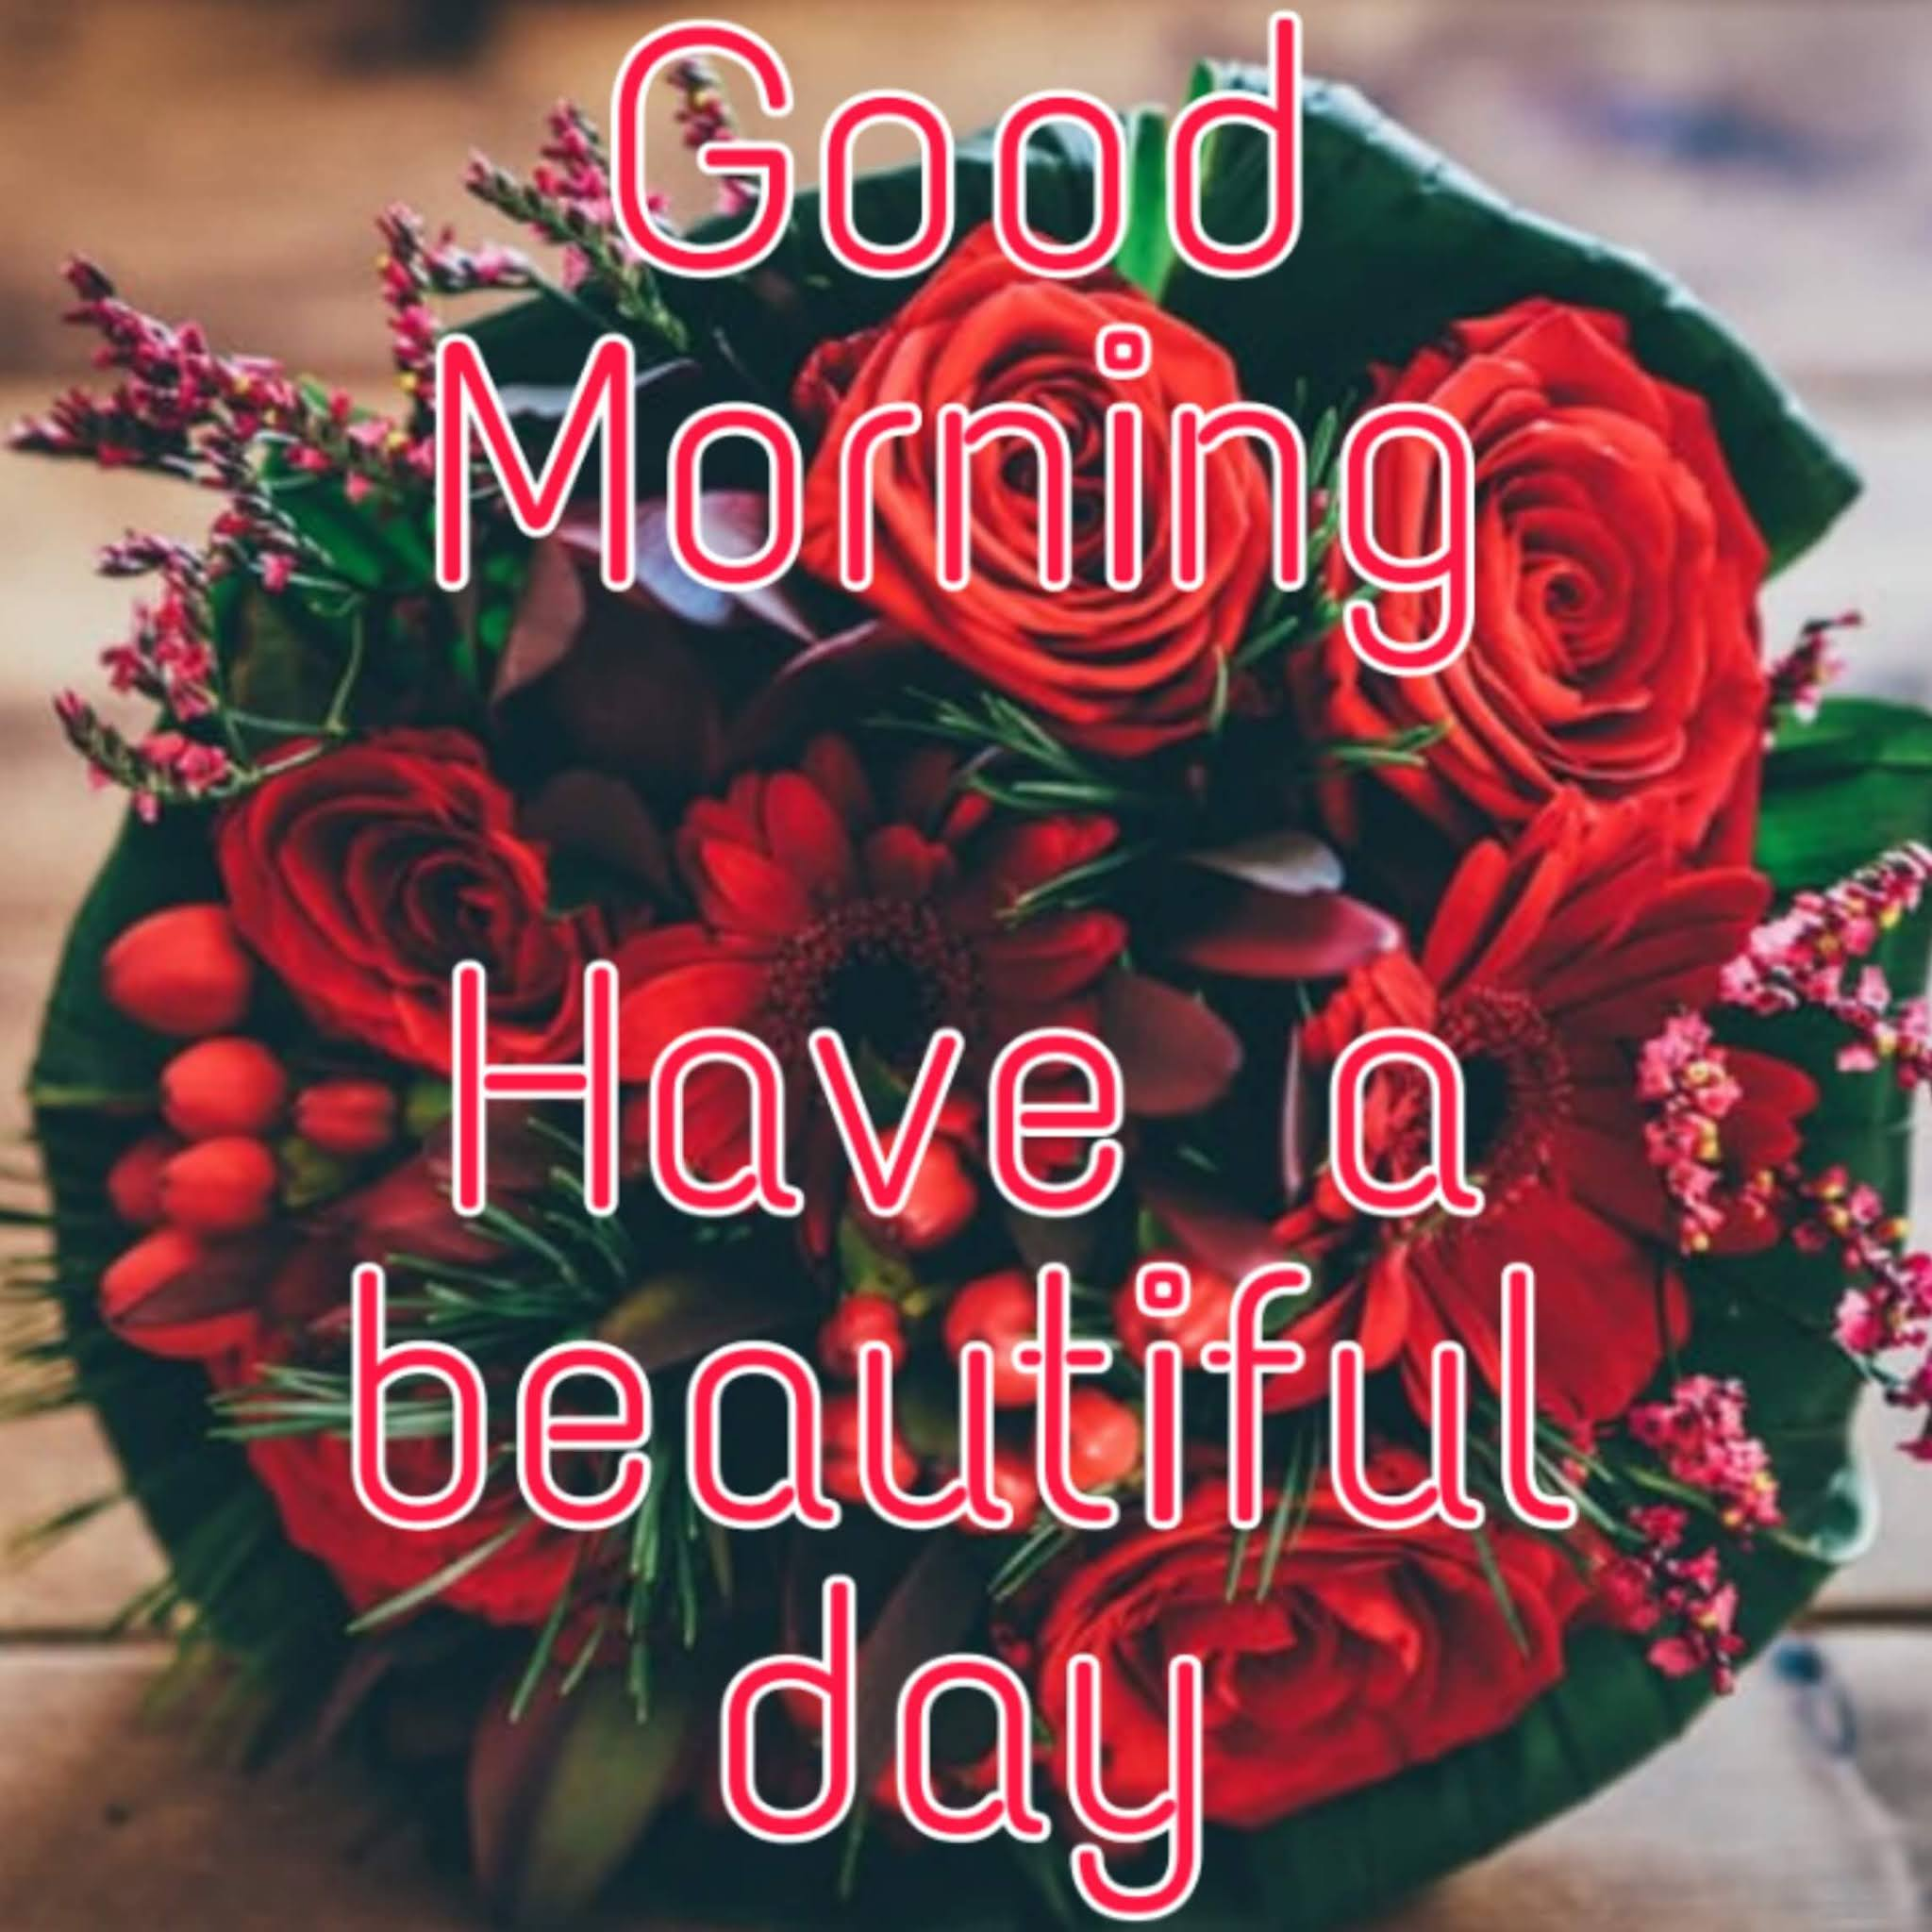 50 Good Morning Red Rose Images Free Download Best Wishes Image